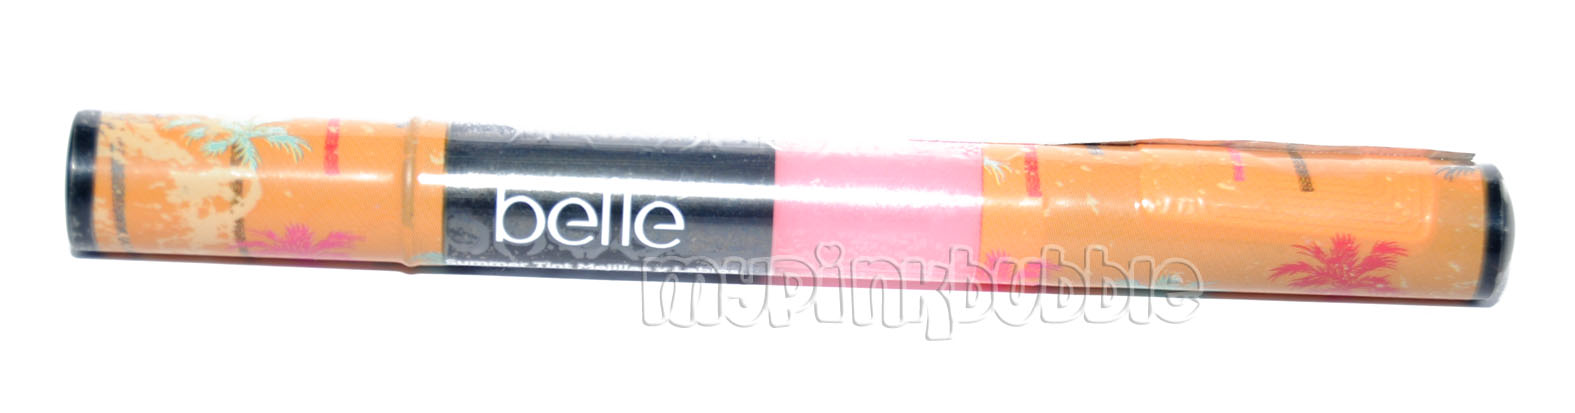 belle tint mejillas y labios 50 summer love